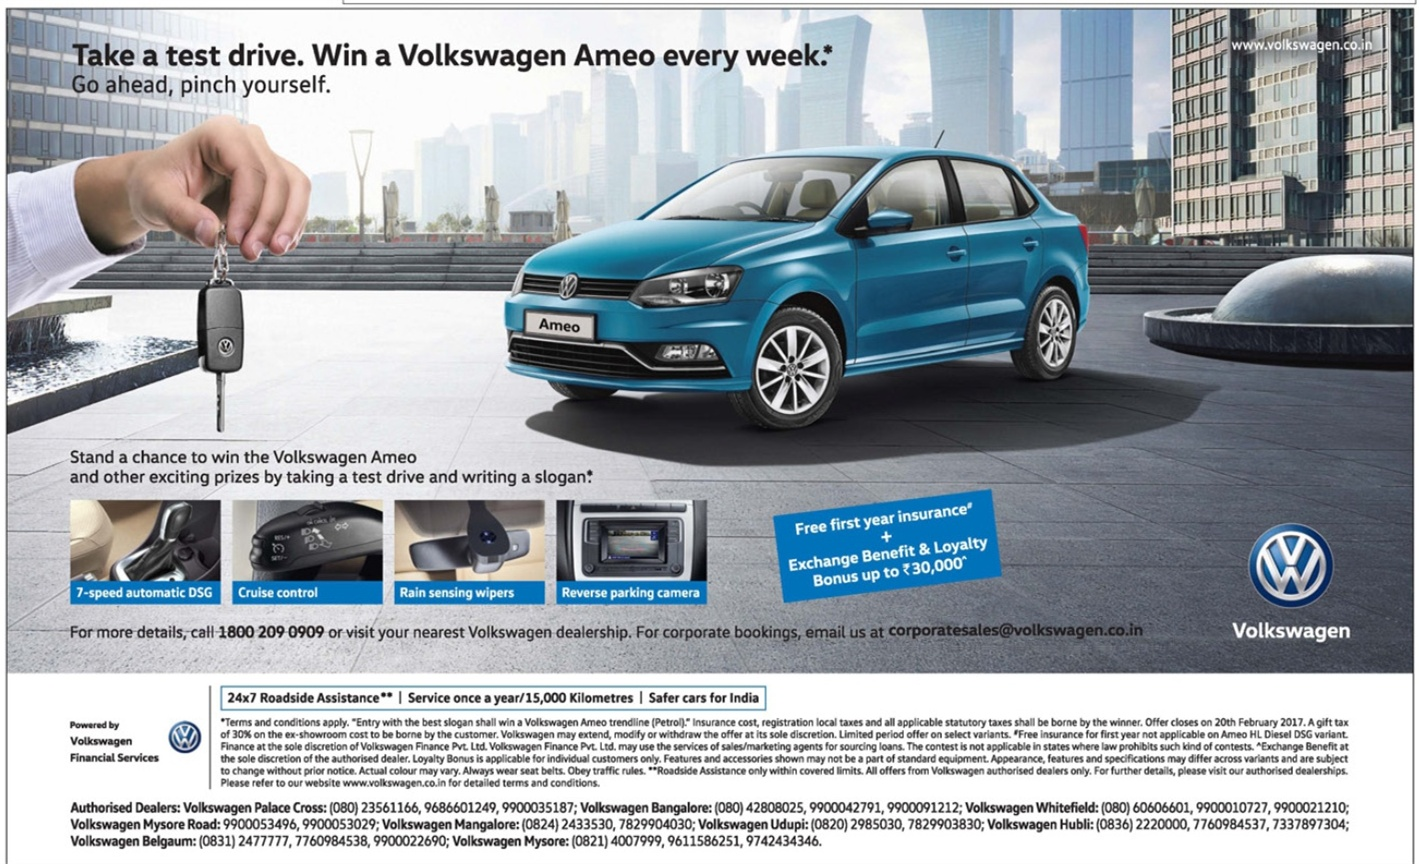 Take a test drive and win a volkswagen ameo car february 2017 festival offers